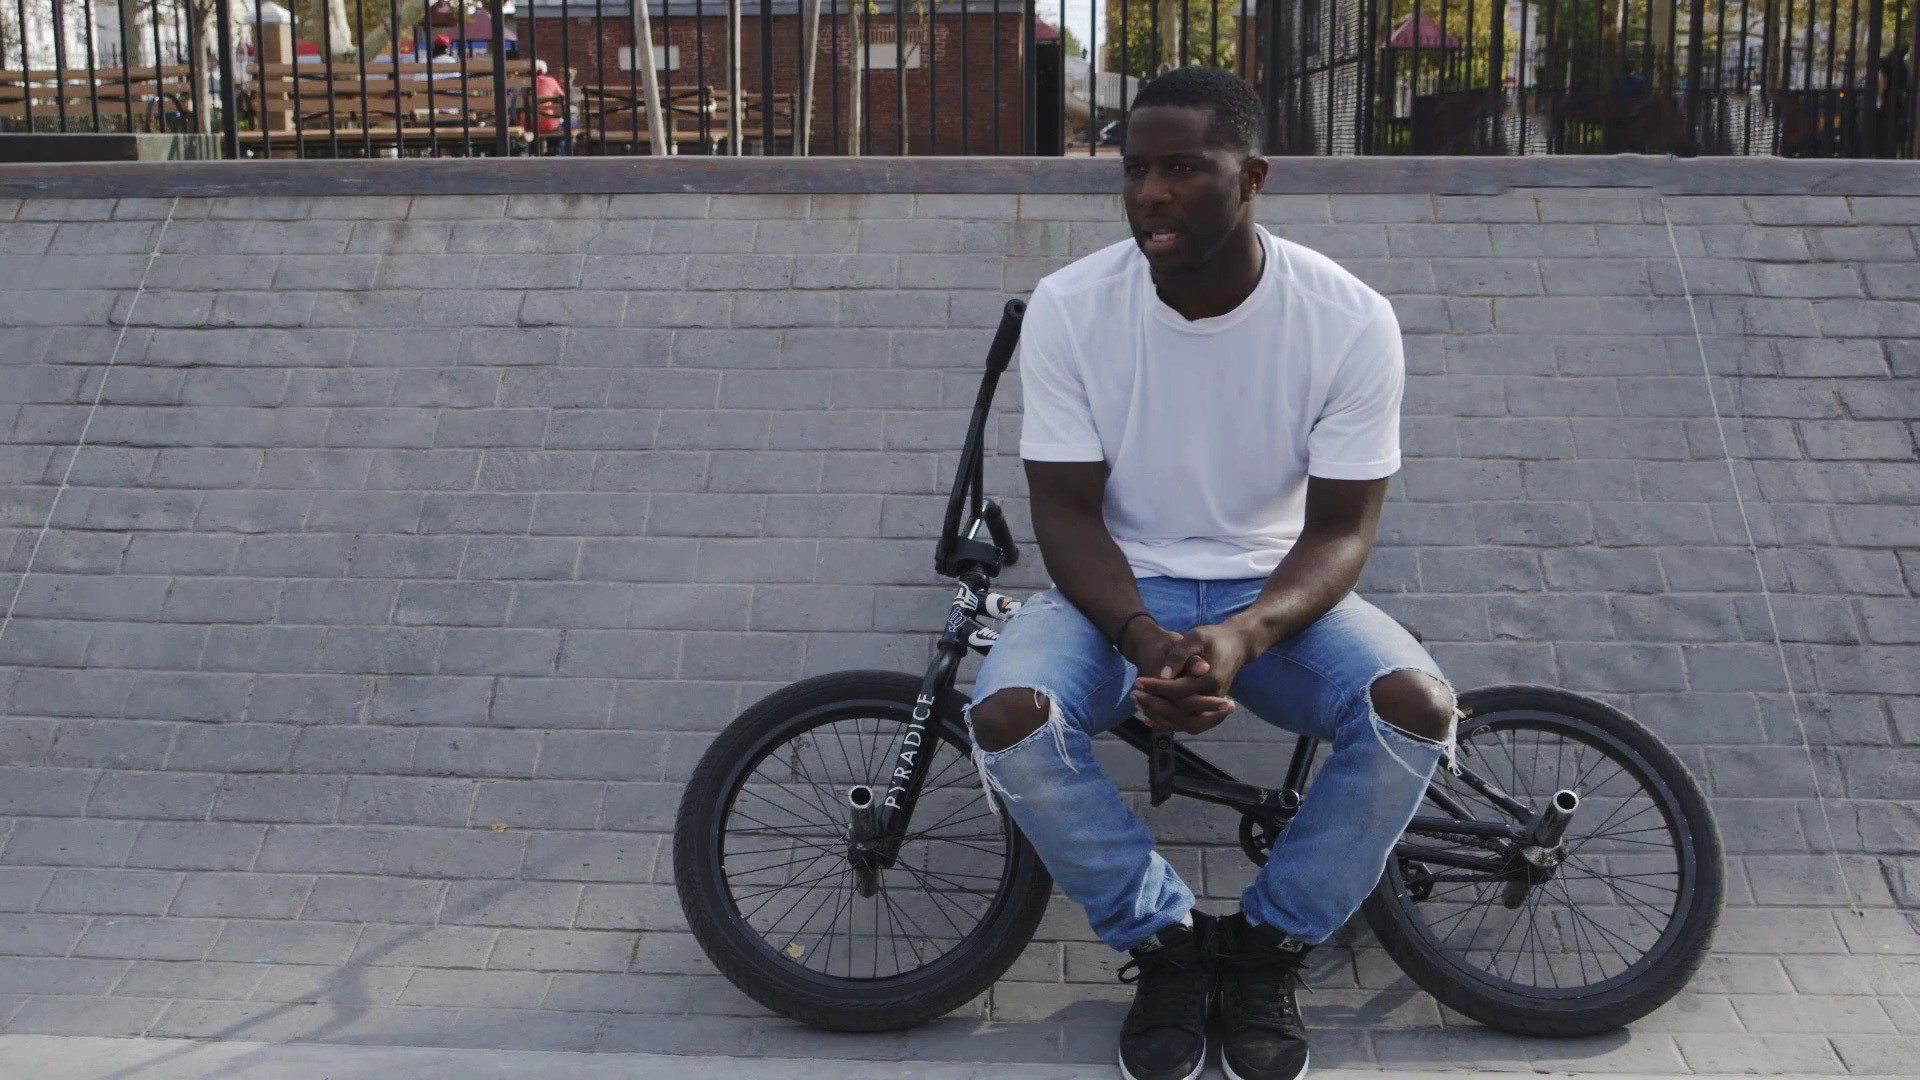 Nigel Sylvester on Breaking the Mold and Taking on BMX (Part 1)